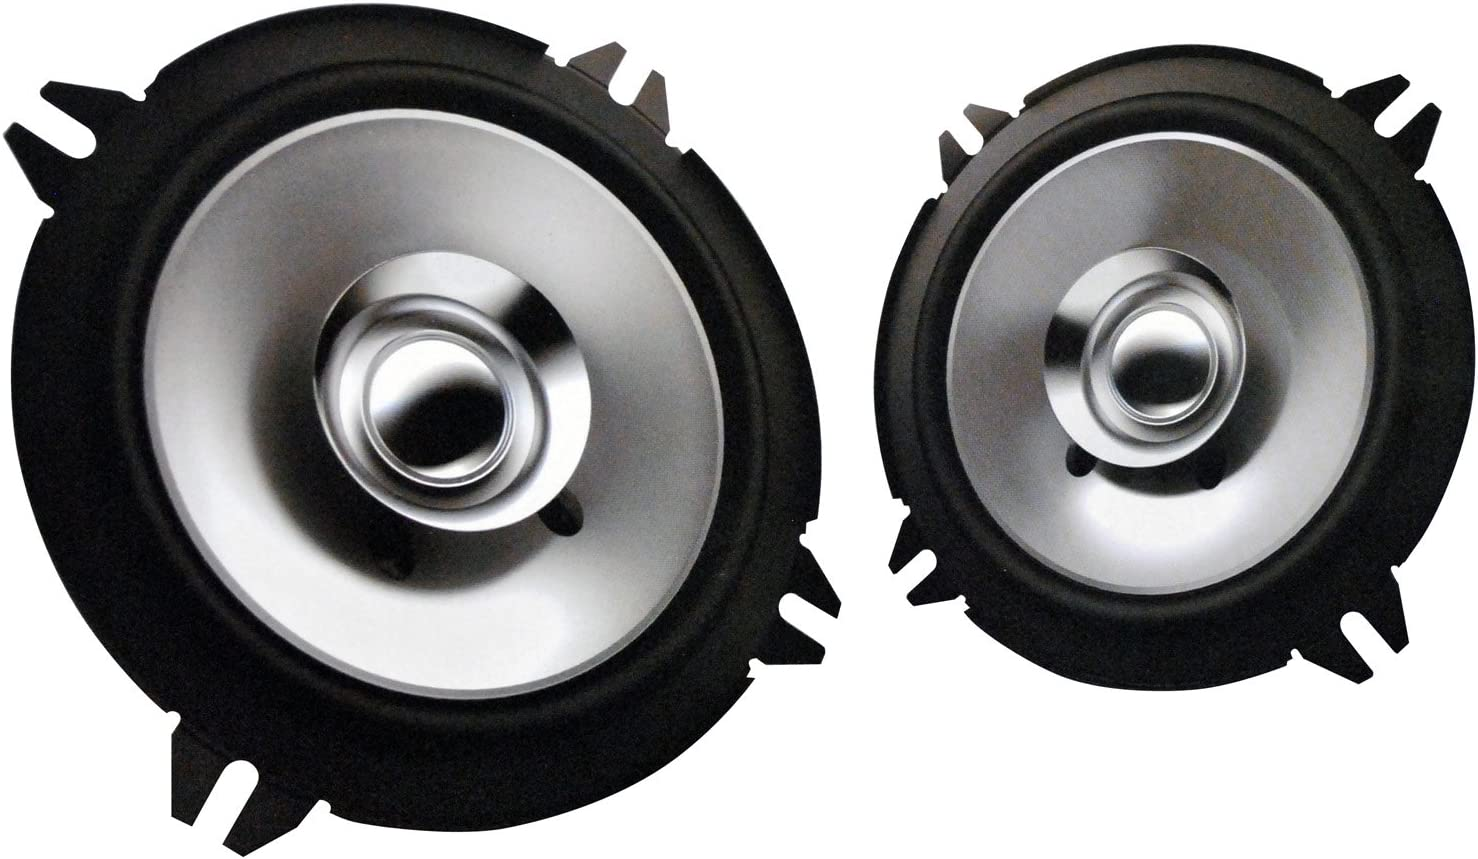 2X 6965S 6x9 400W 3-Way Speaker Enrock 16g 50 Ft Speaker Wire 2X KFC1665S 6.5 2-Way Audio Speaker 3 Pair Car Speaker Package of 2X Kenwood KFCC1355S 5 1//4 250W Flush Mount Coaxial Speakers